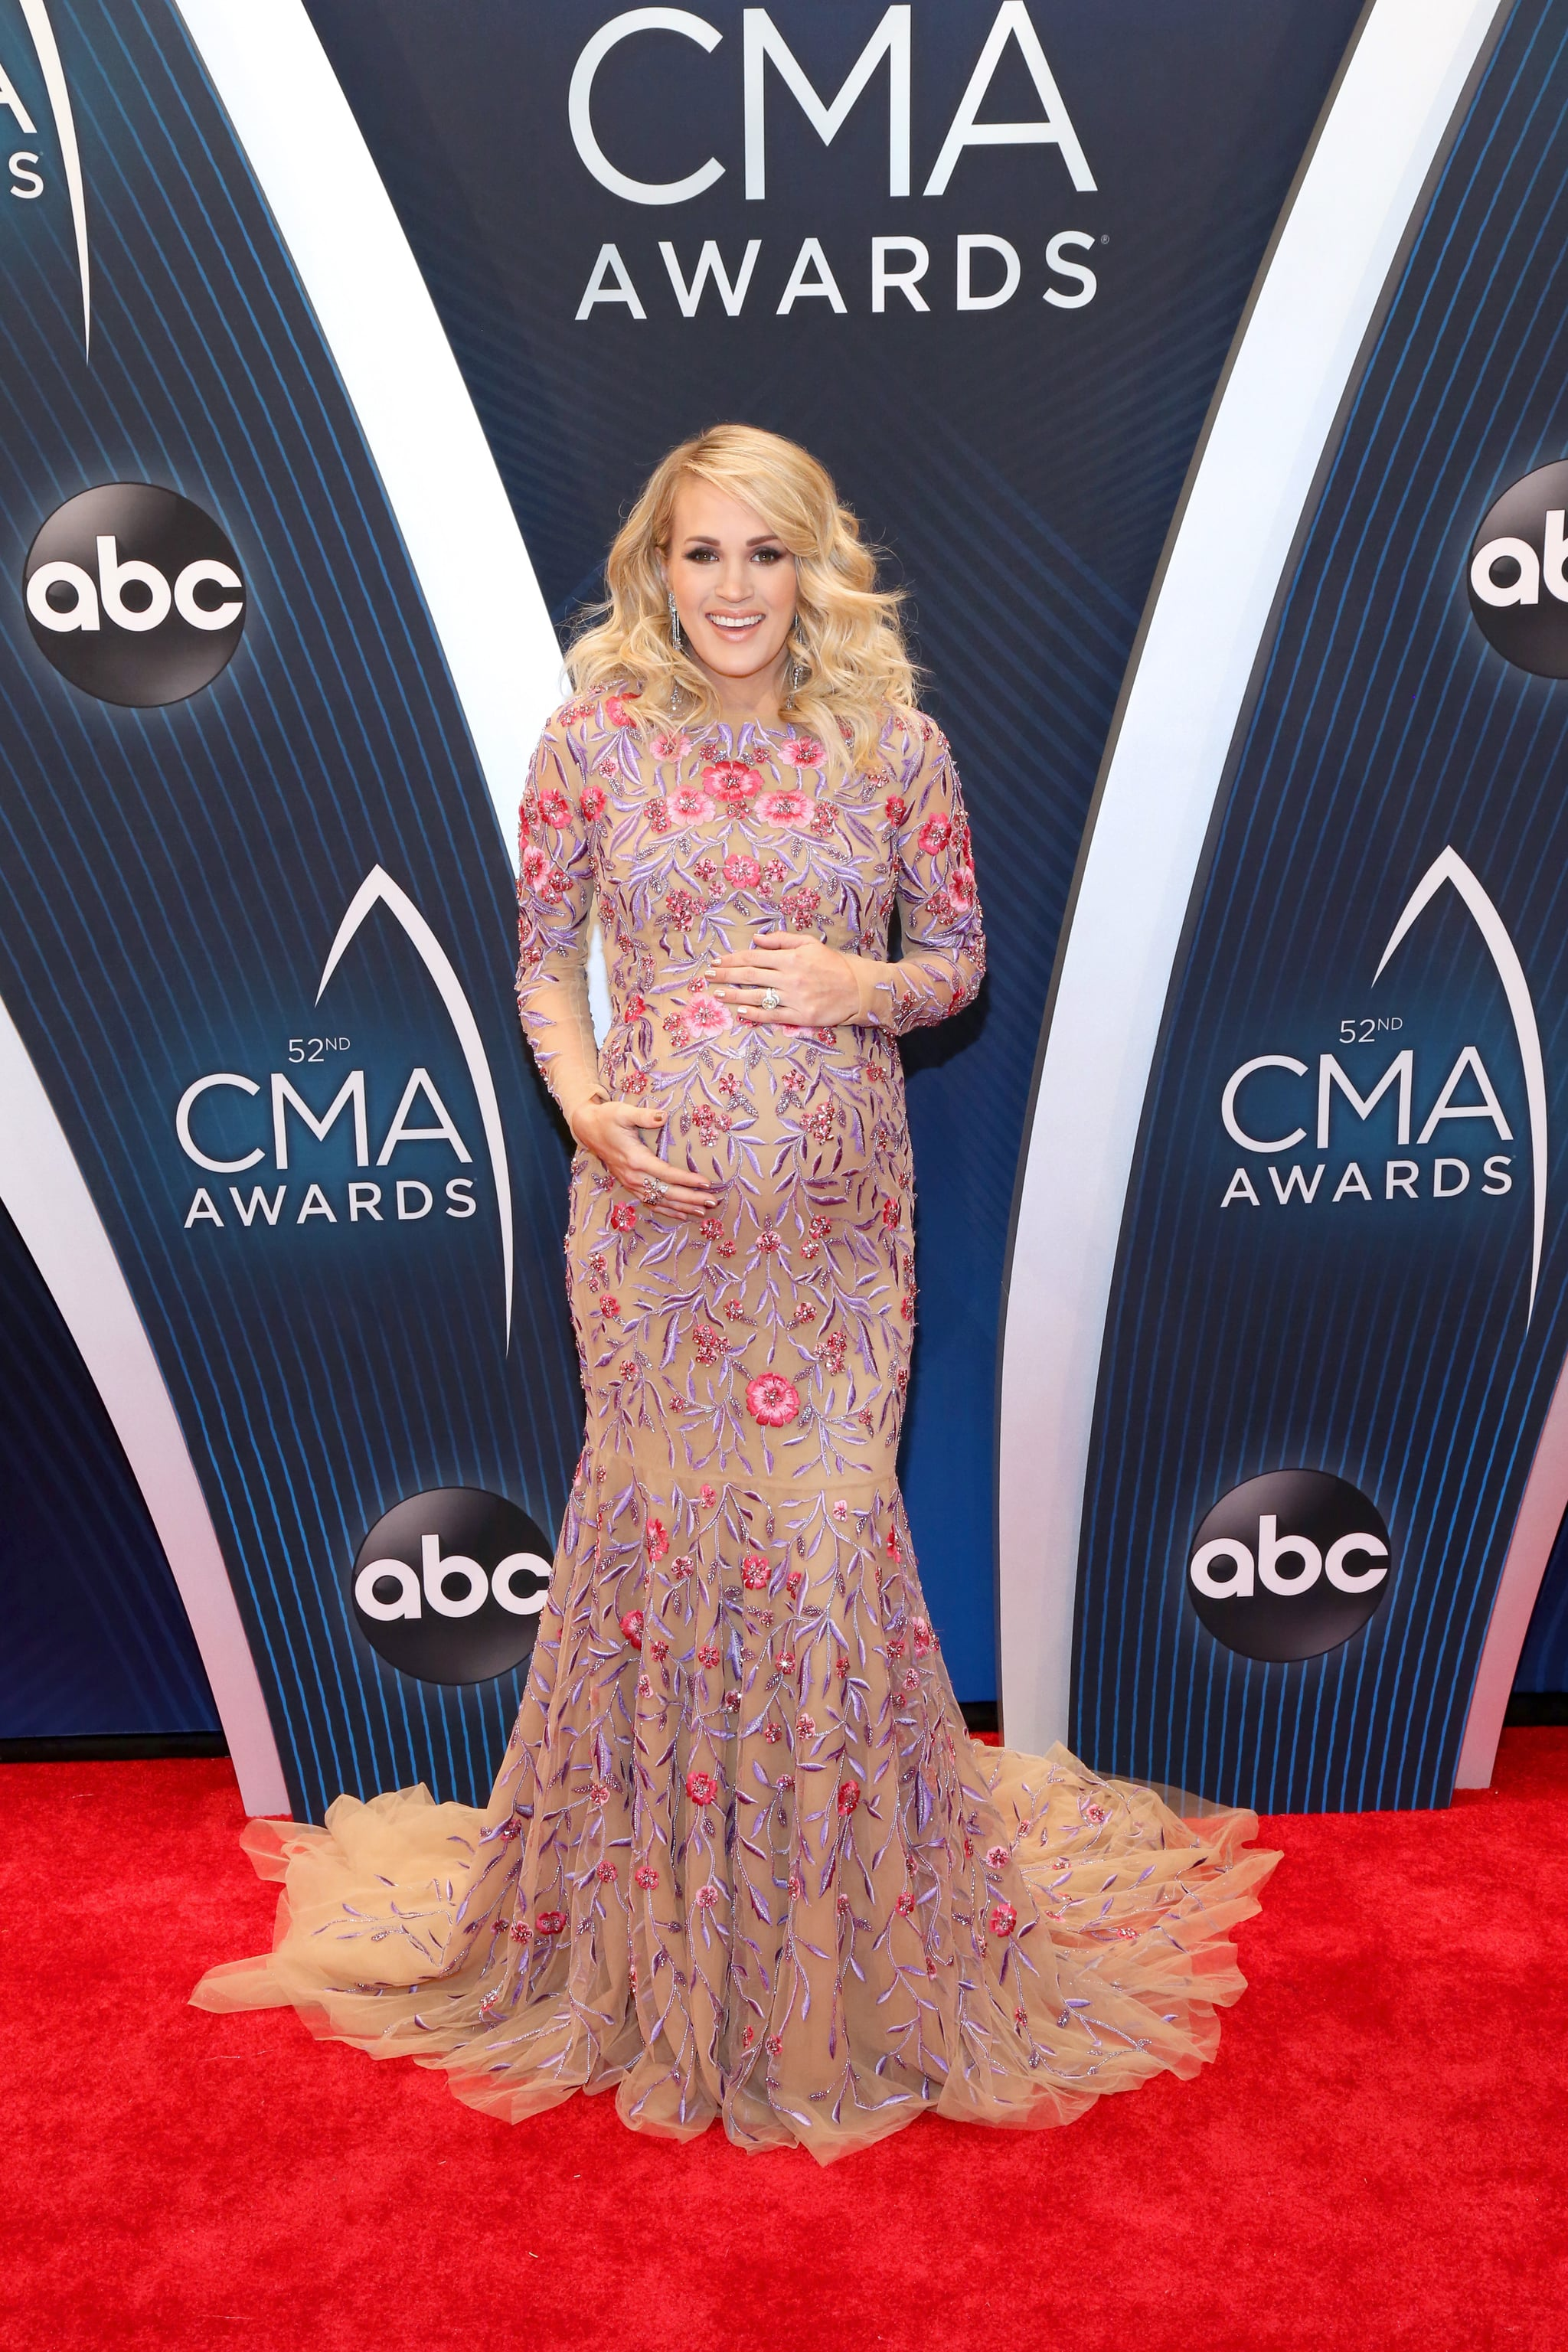 NASHVILLE, TN - NOVEMBER 14:  (FOR EDITORIAL USE ONLY) Carrie Underwood attends the 52nd annual CMA Awards at the Bridgestone Arena on November 14, 2018 in Nashville, Tennessee.  (Photo by Terry Wyatt/FilmMagic)